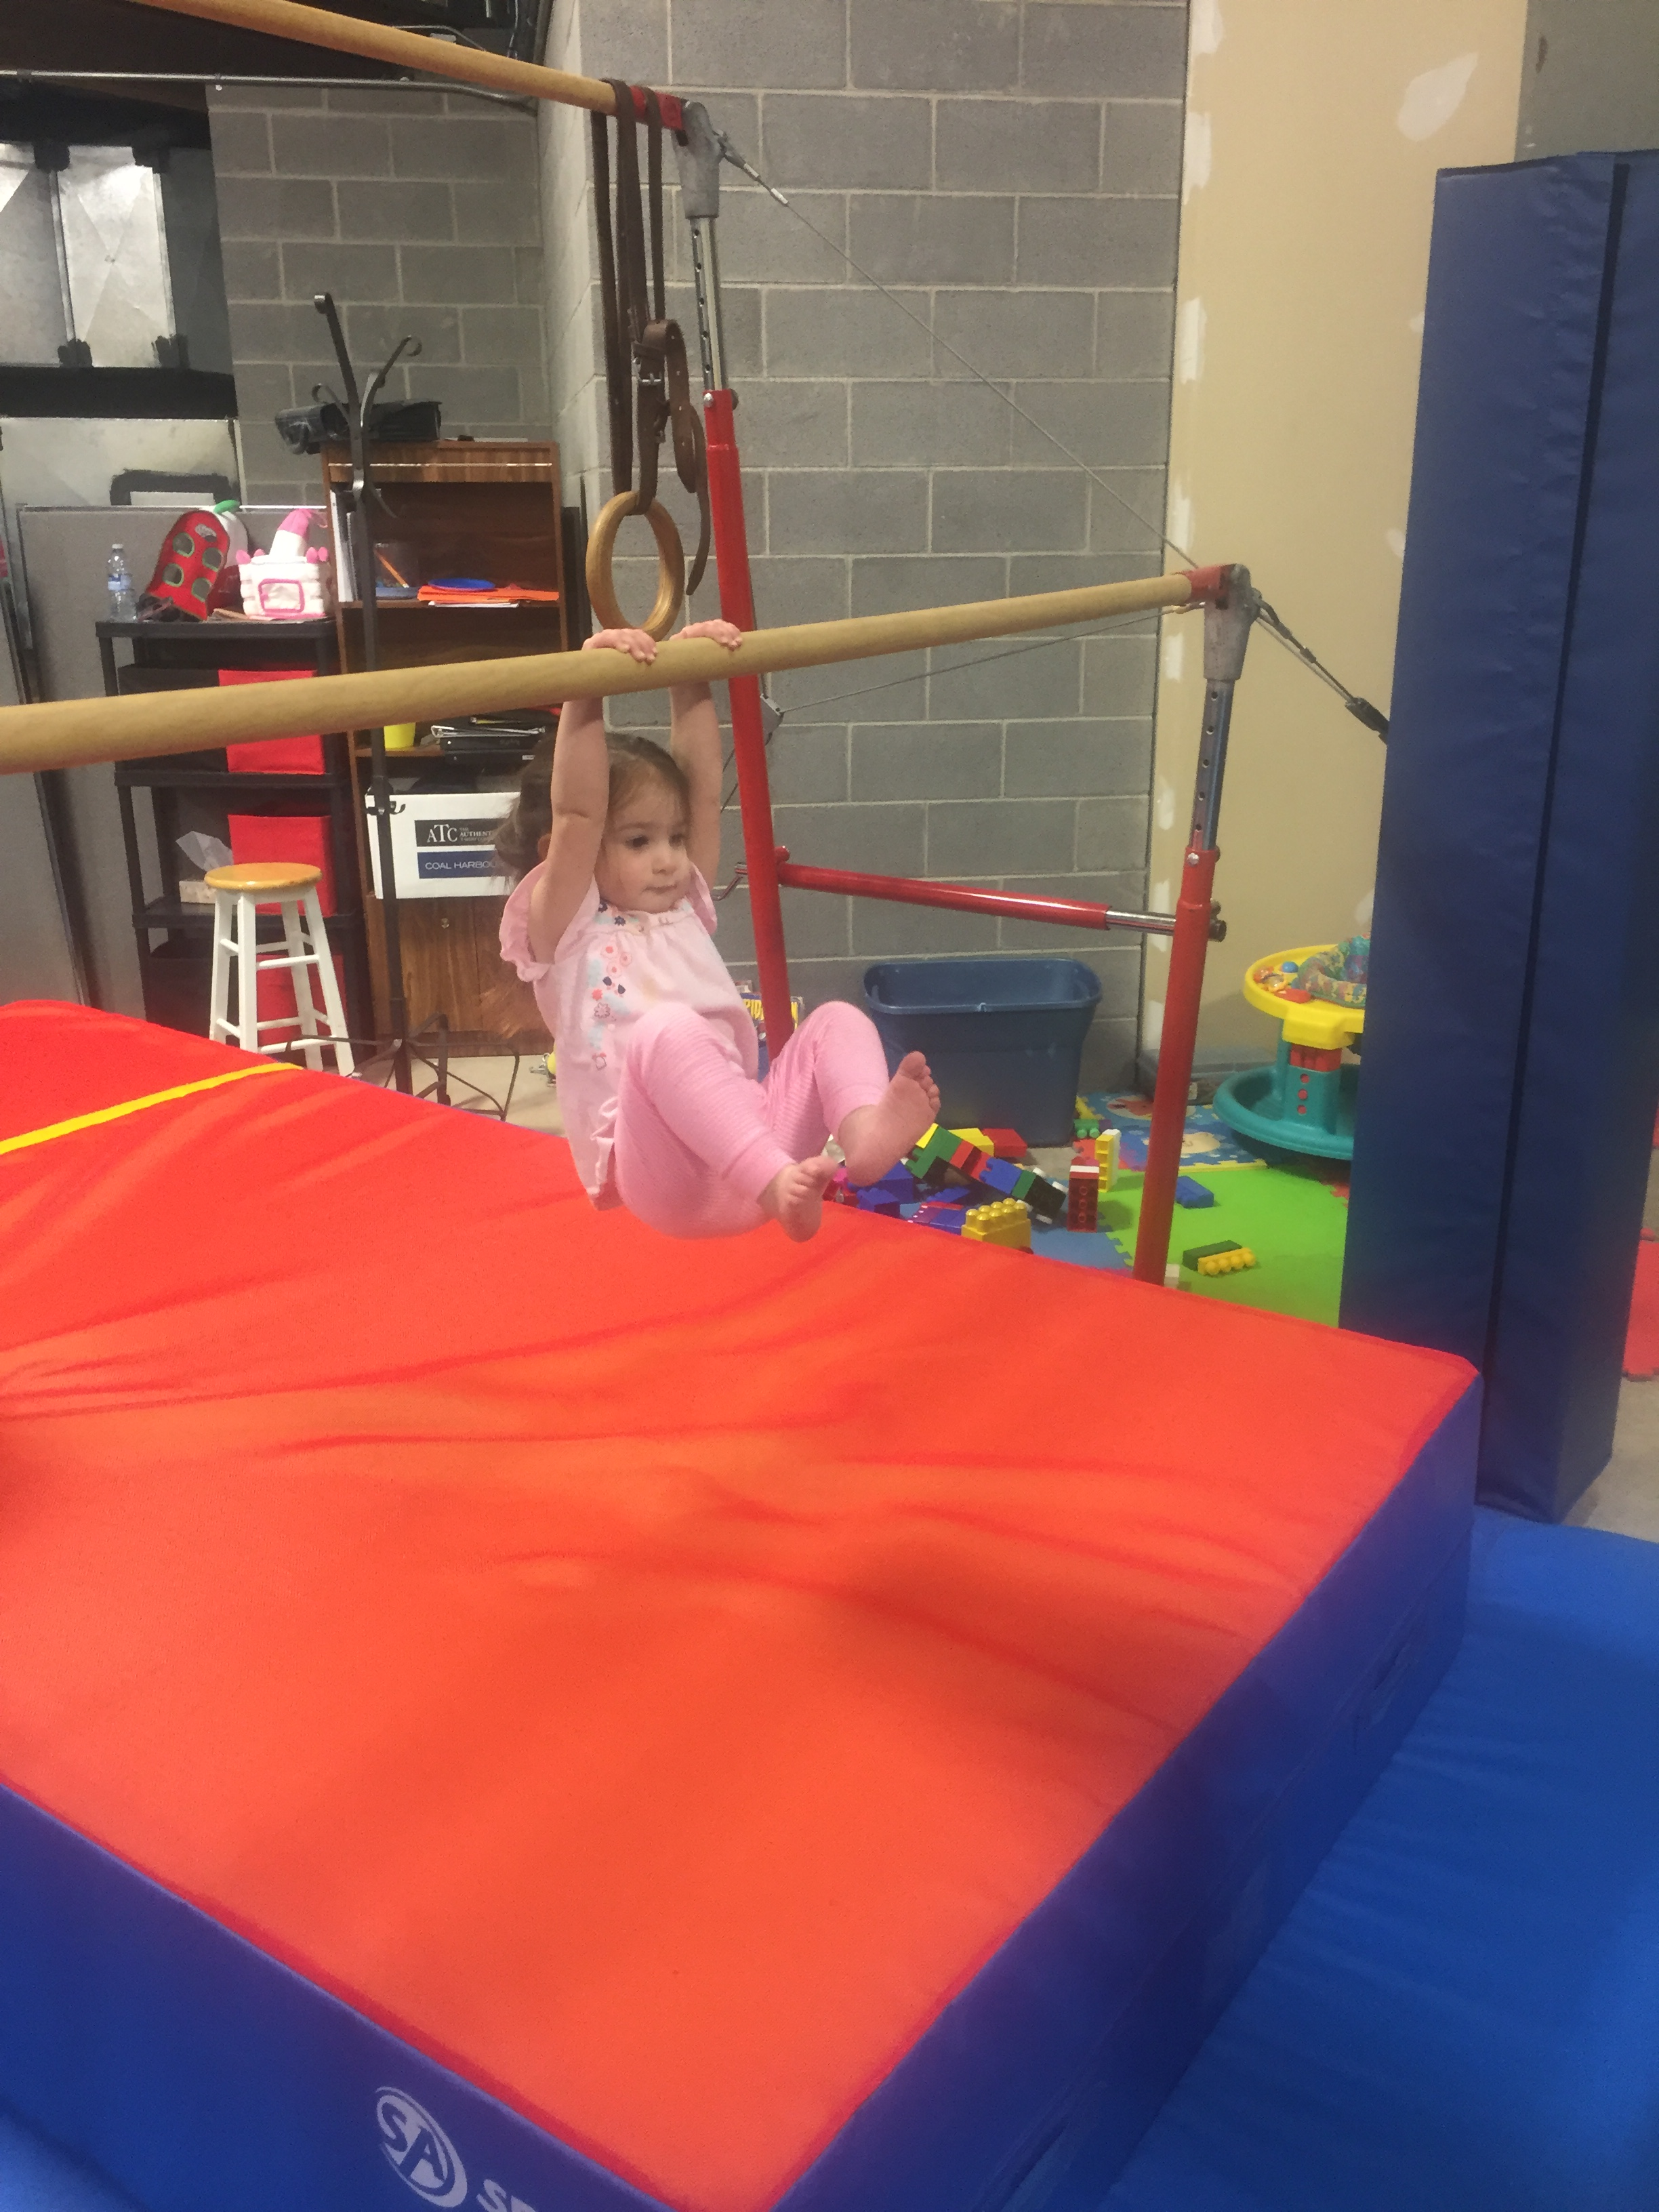 Naomi on the low bar at the gymnastics open gym.